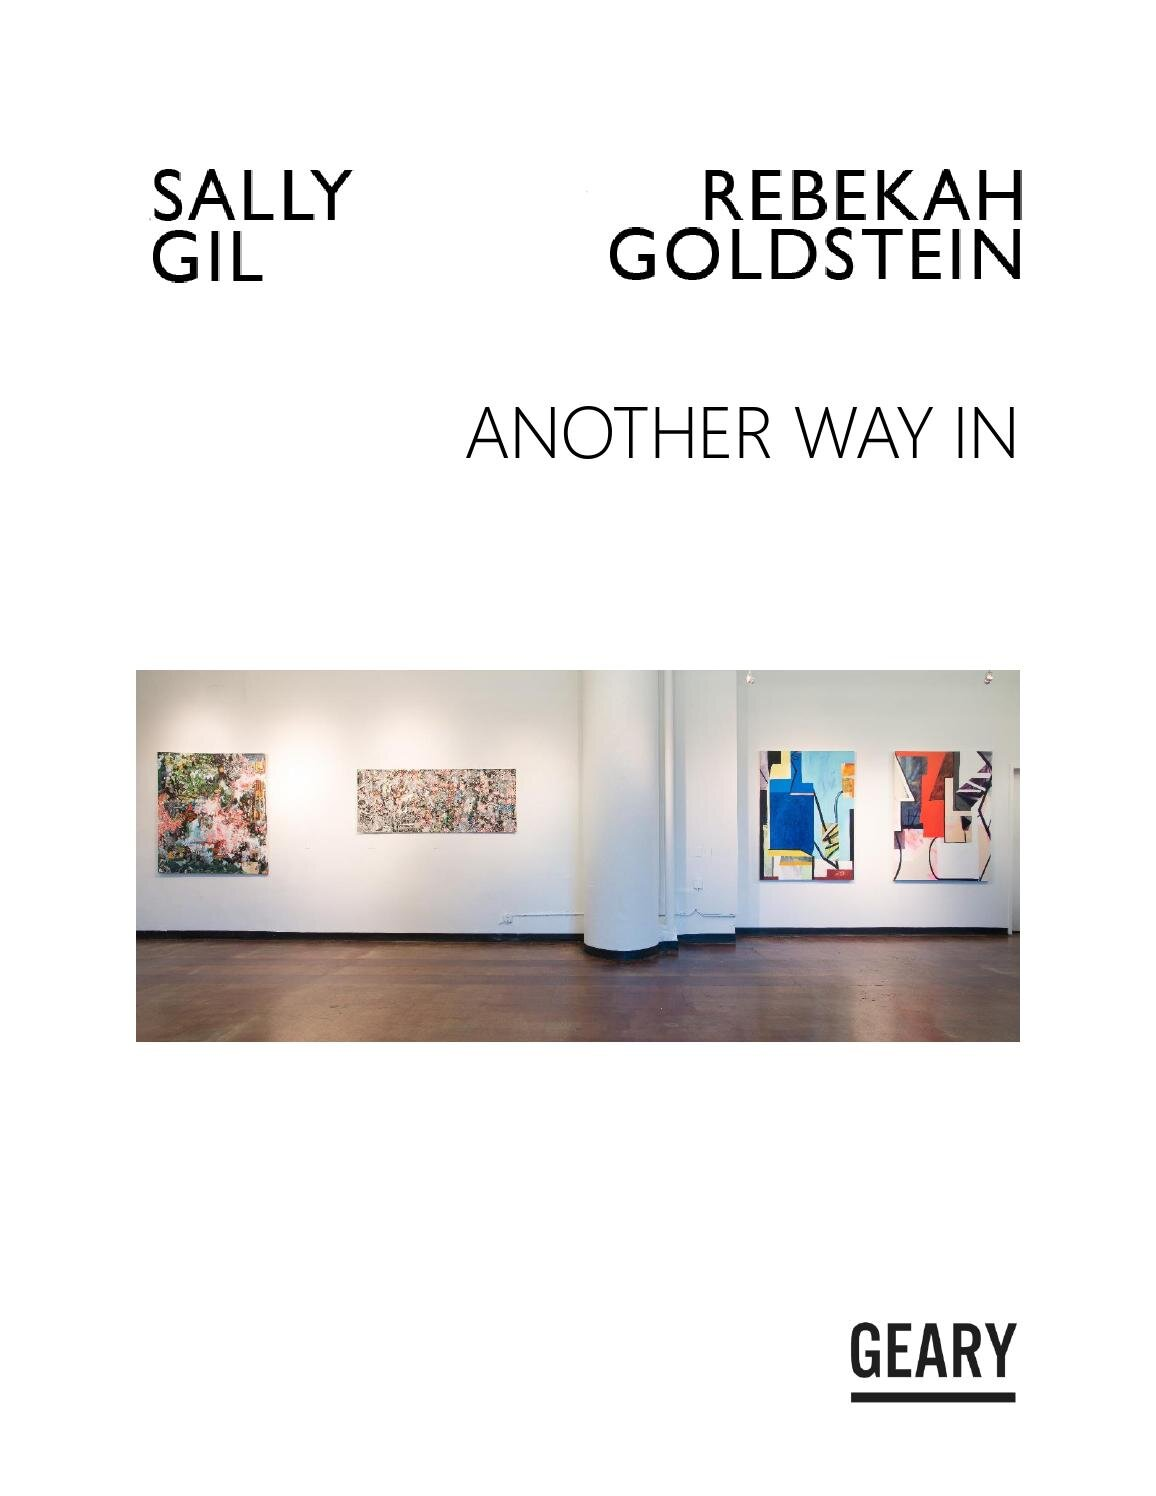 Essay for Rebekah Goldstein at Jack Geary, NYC 2015